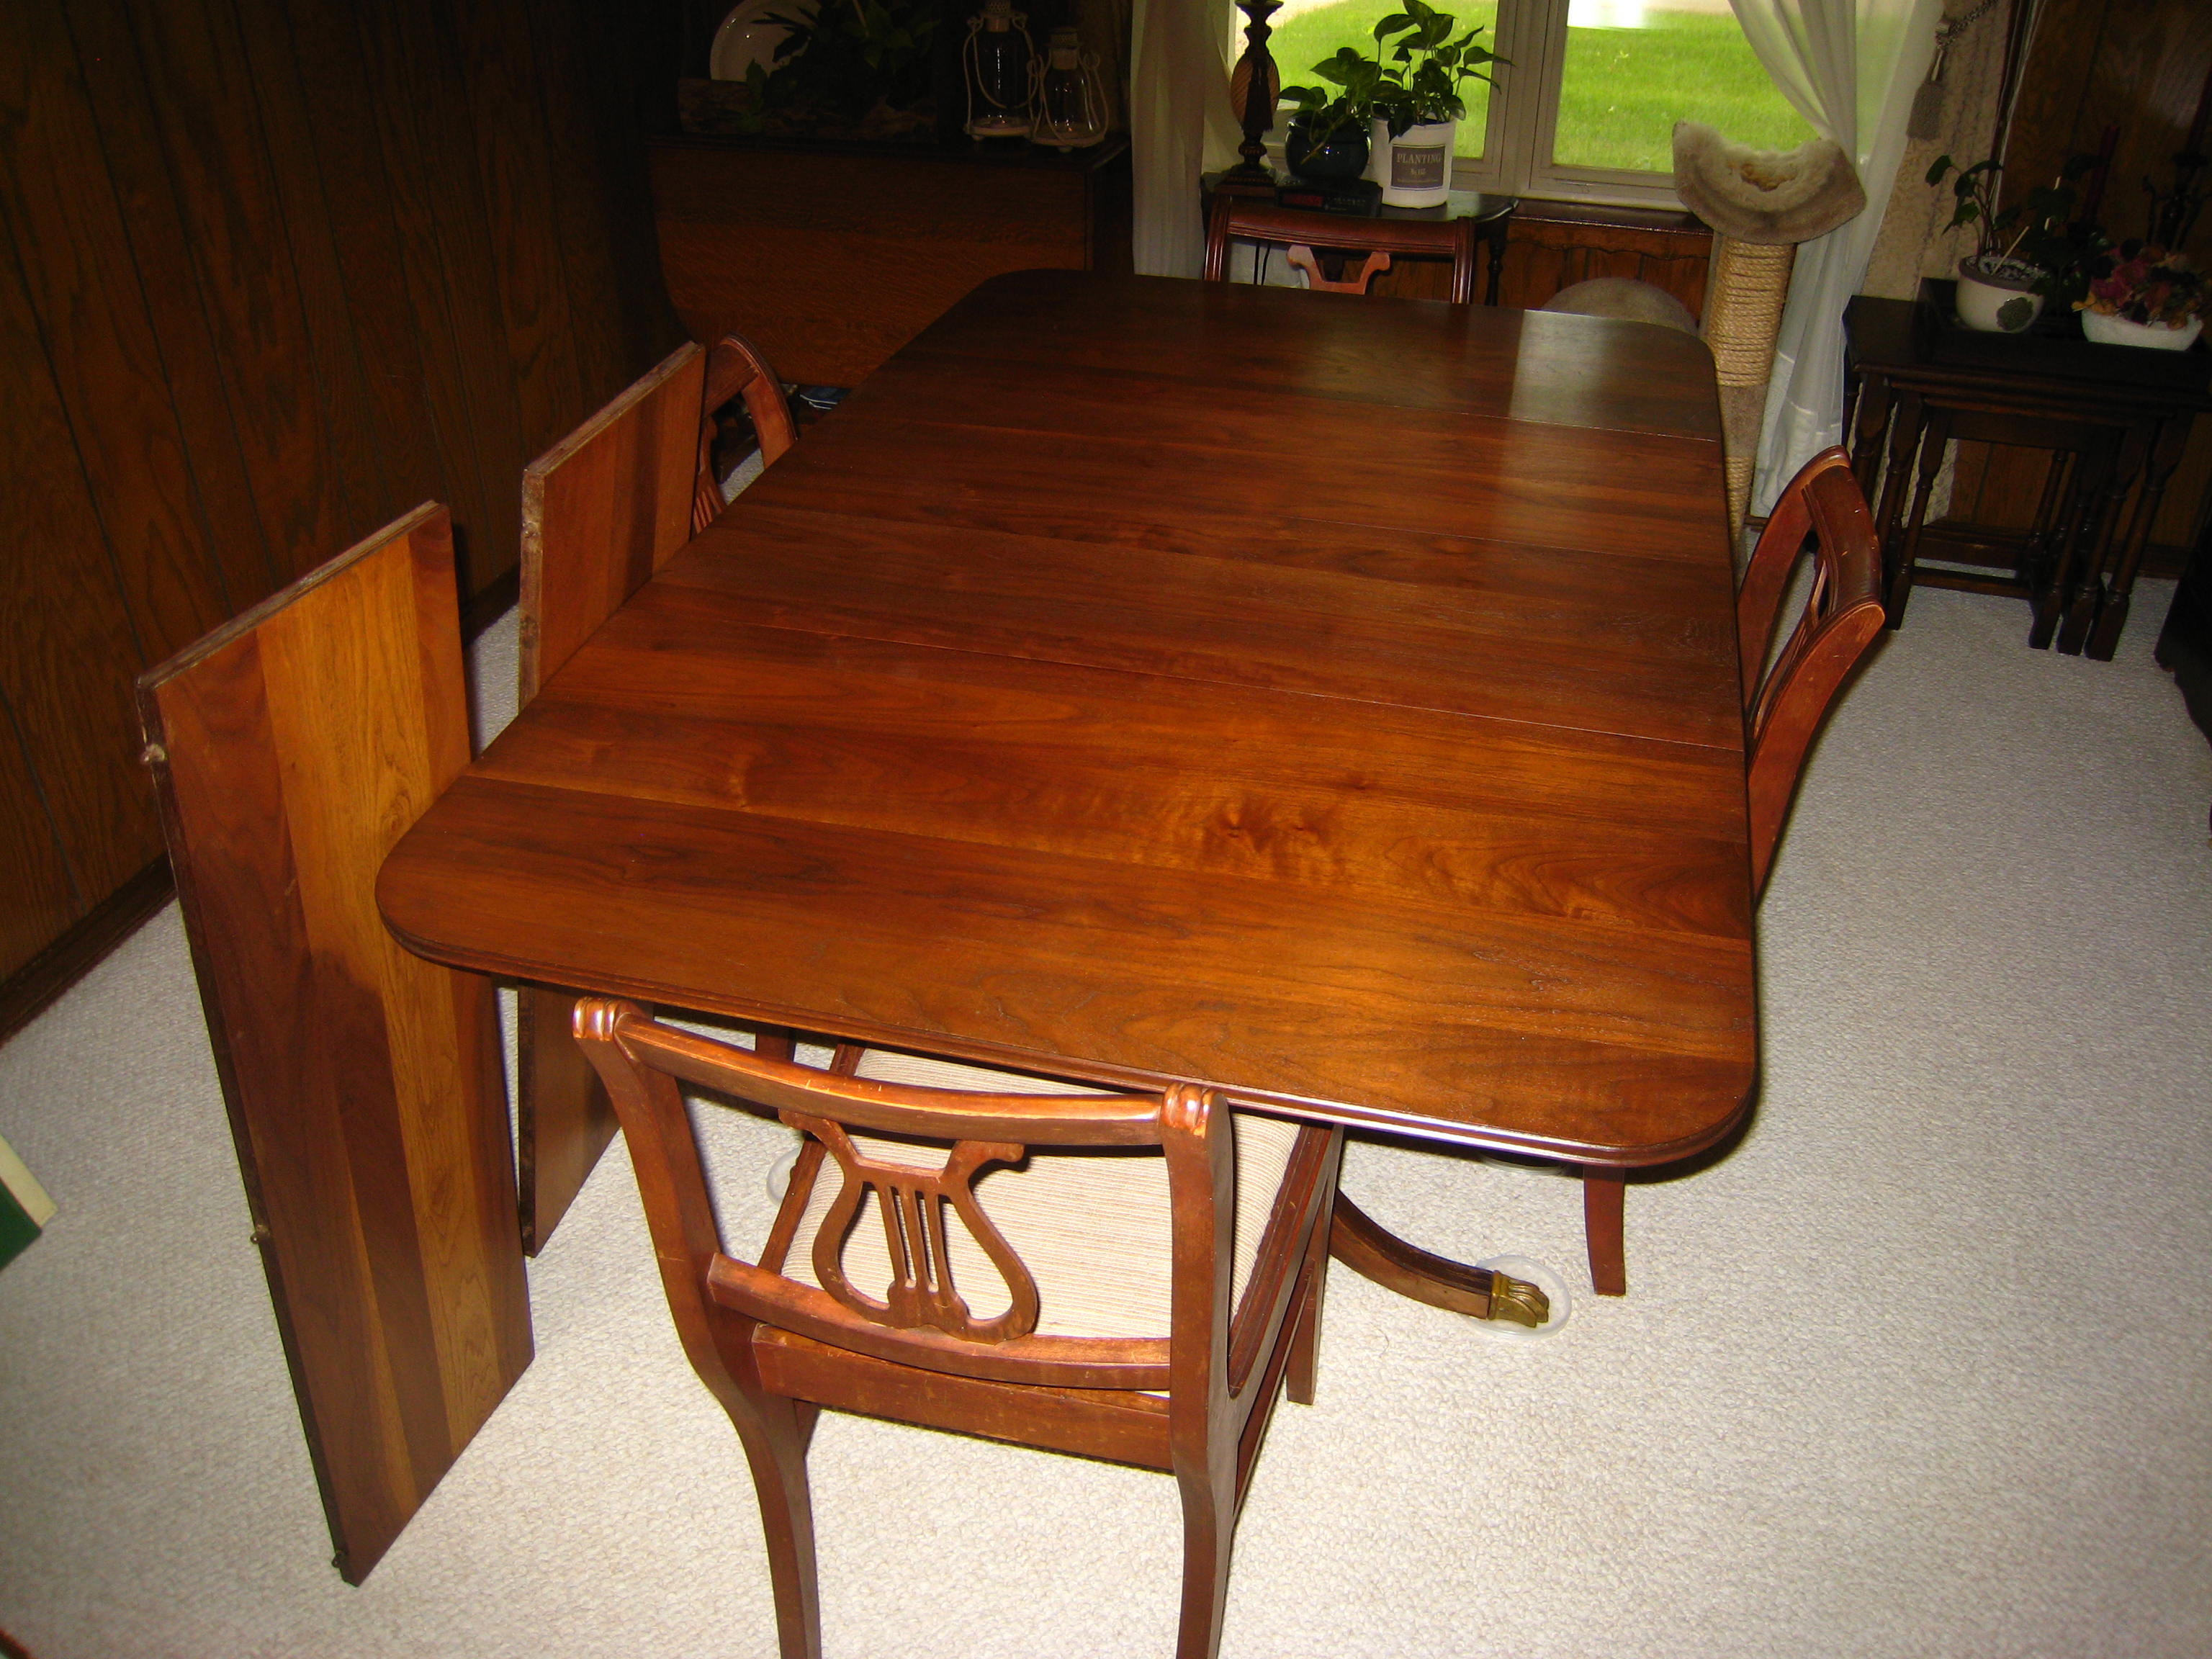 Banded mahogany duncan phyfe style dining table w brass for Styling a dining table